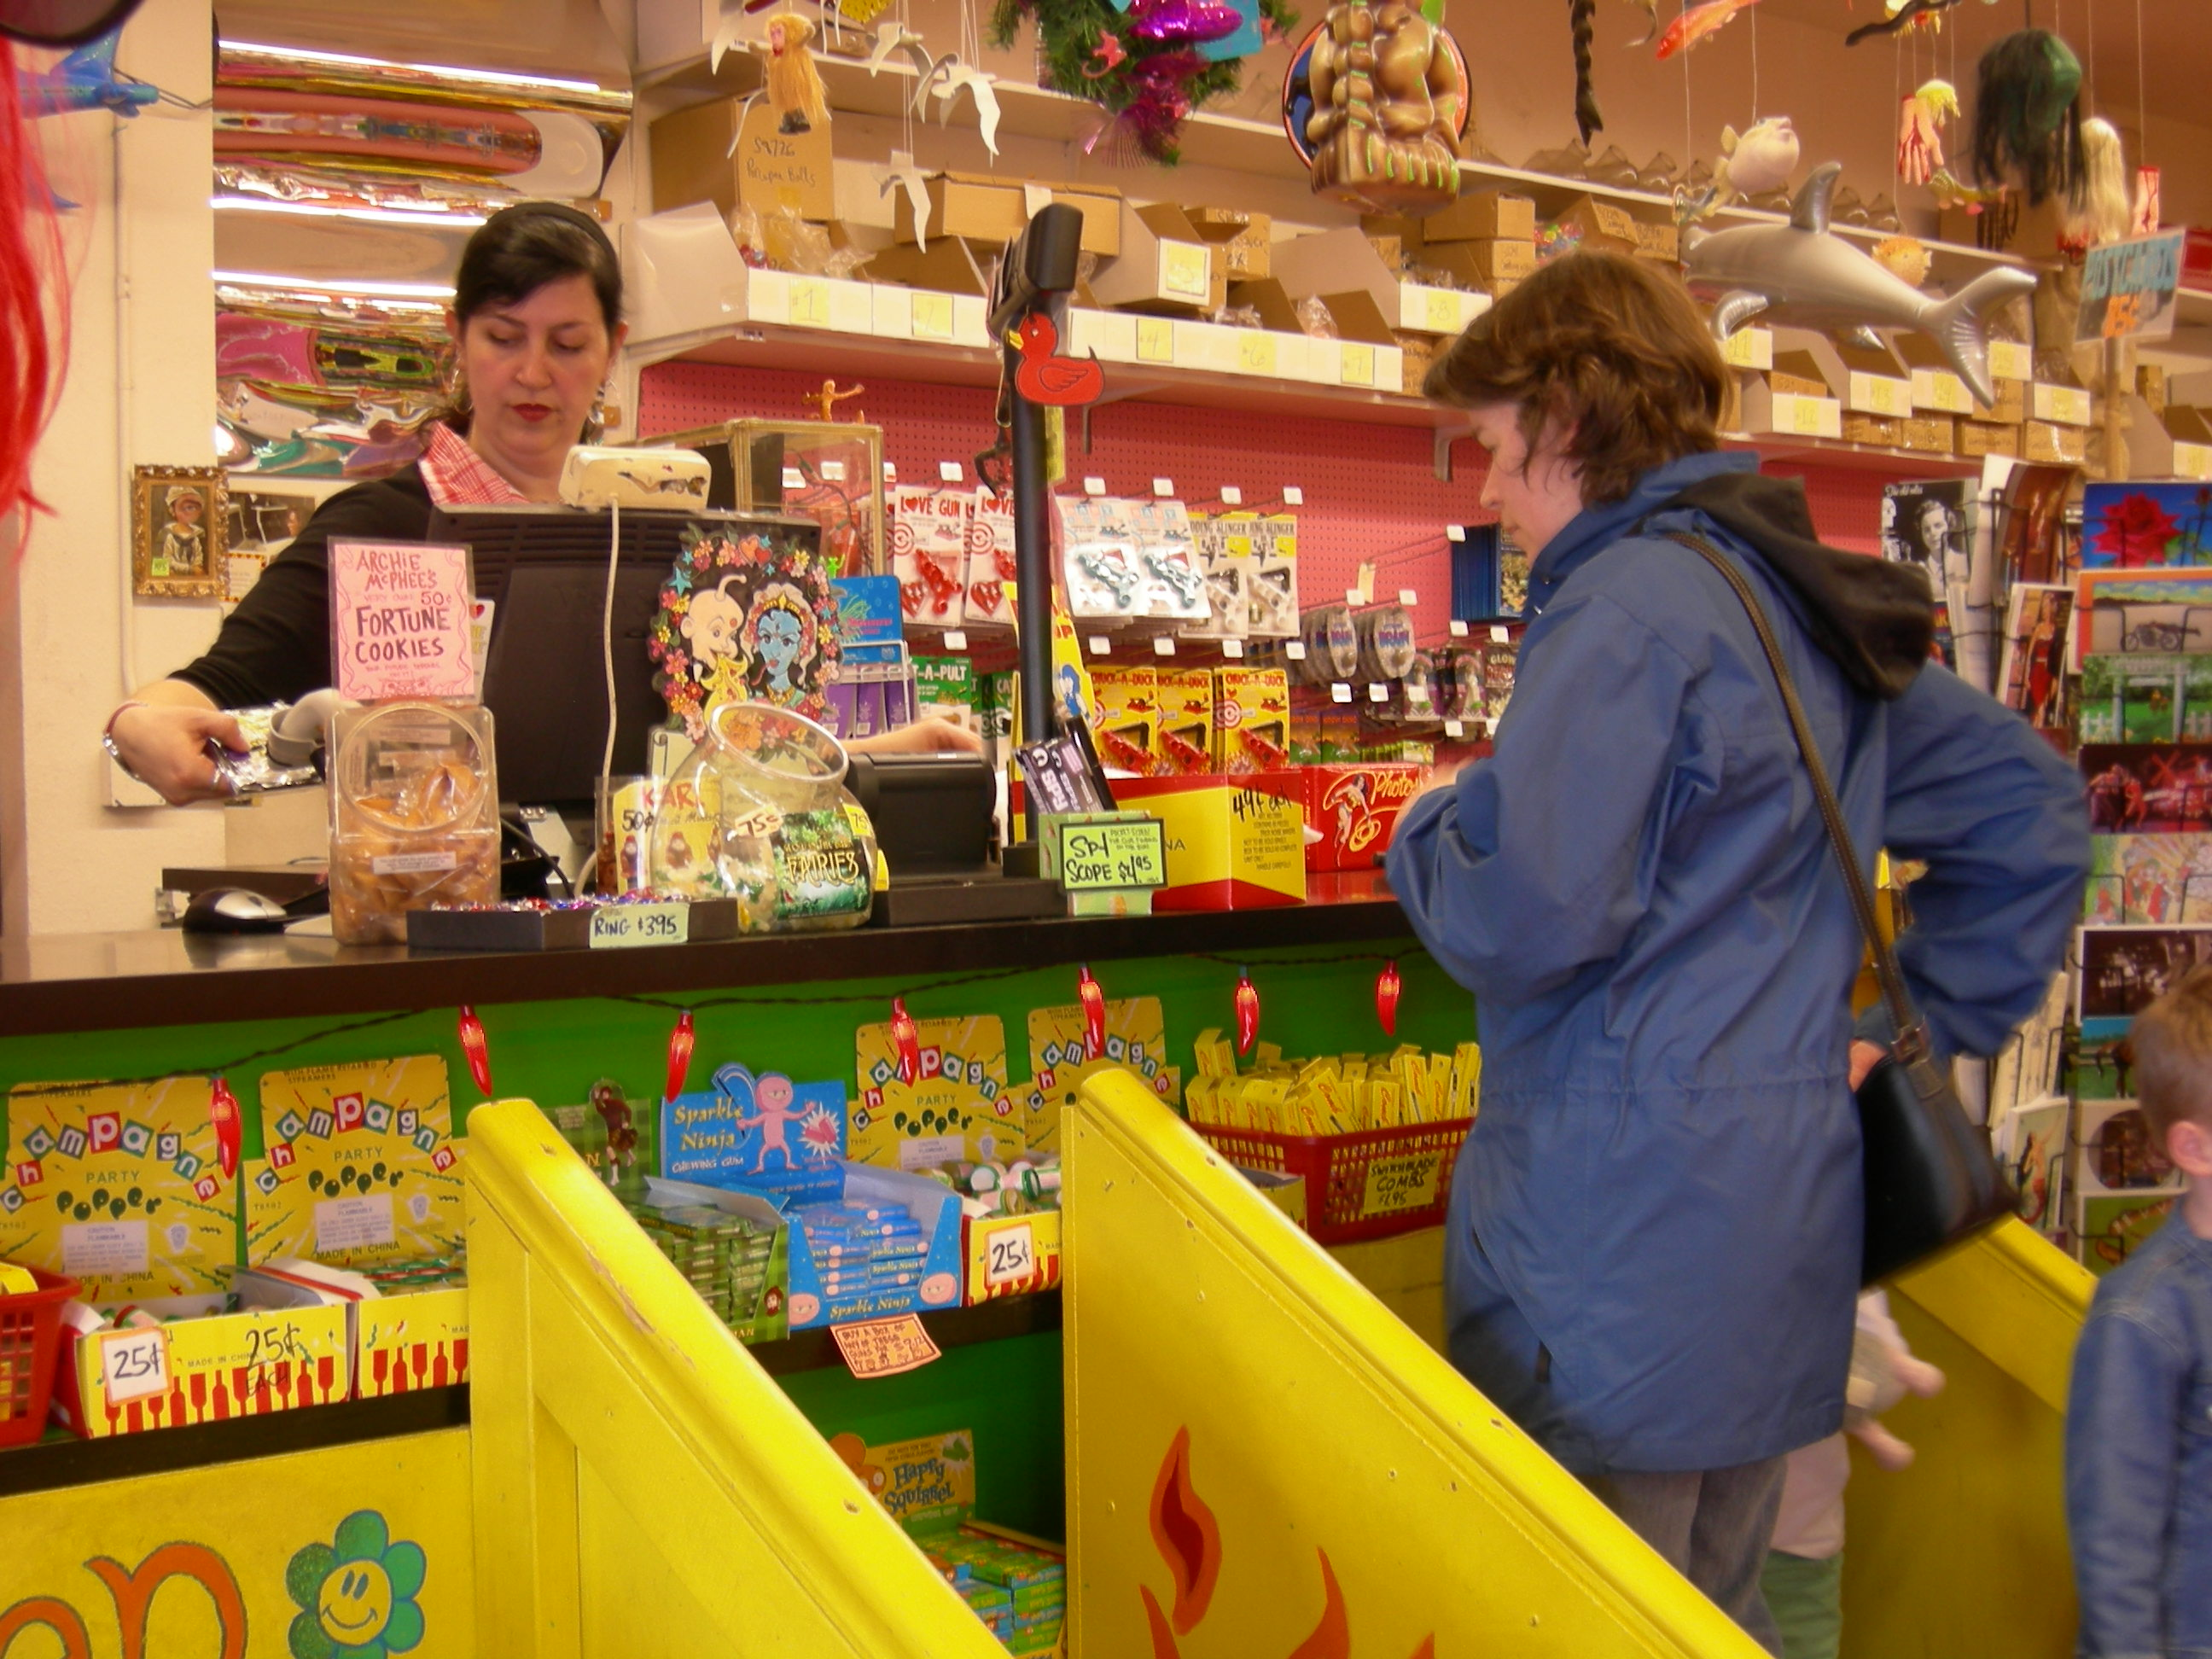 File:Archie McPhee checkout.jpg - Wikimedia Commons